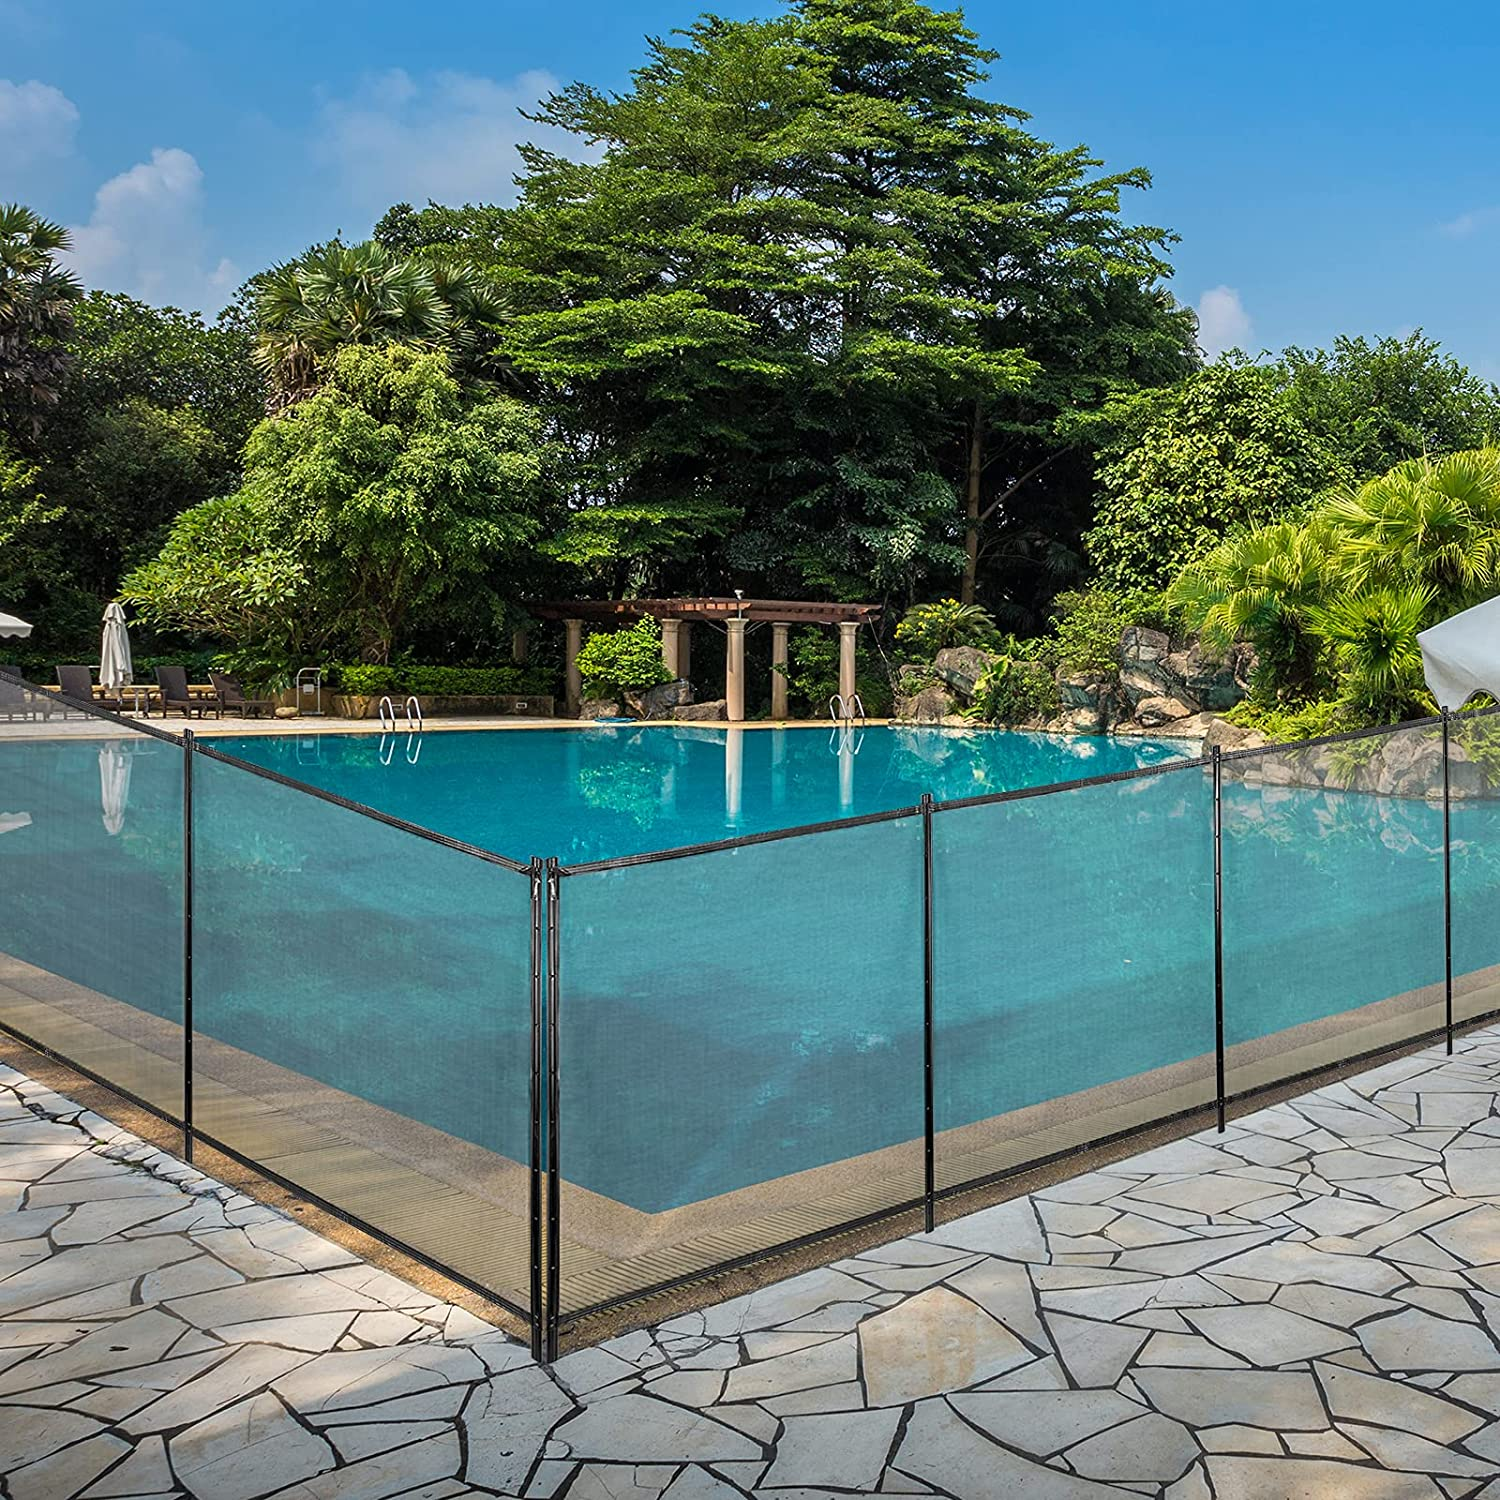 VEVOR Sentry Security Pool Hol Removable Fence 4x12ft It Max 66% OFF is very popular